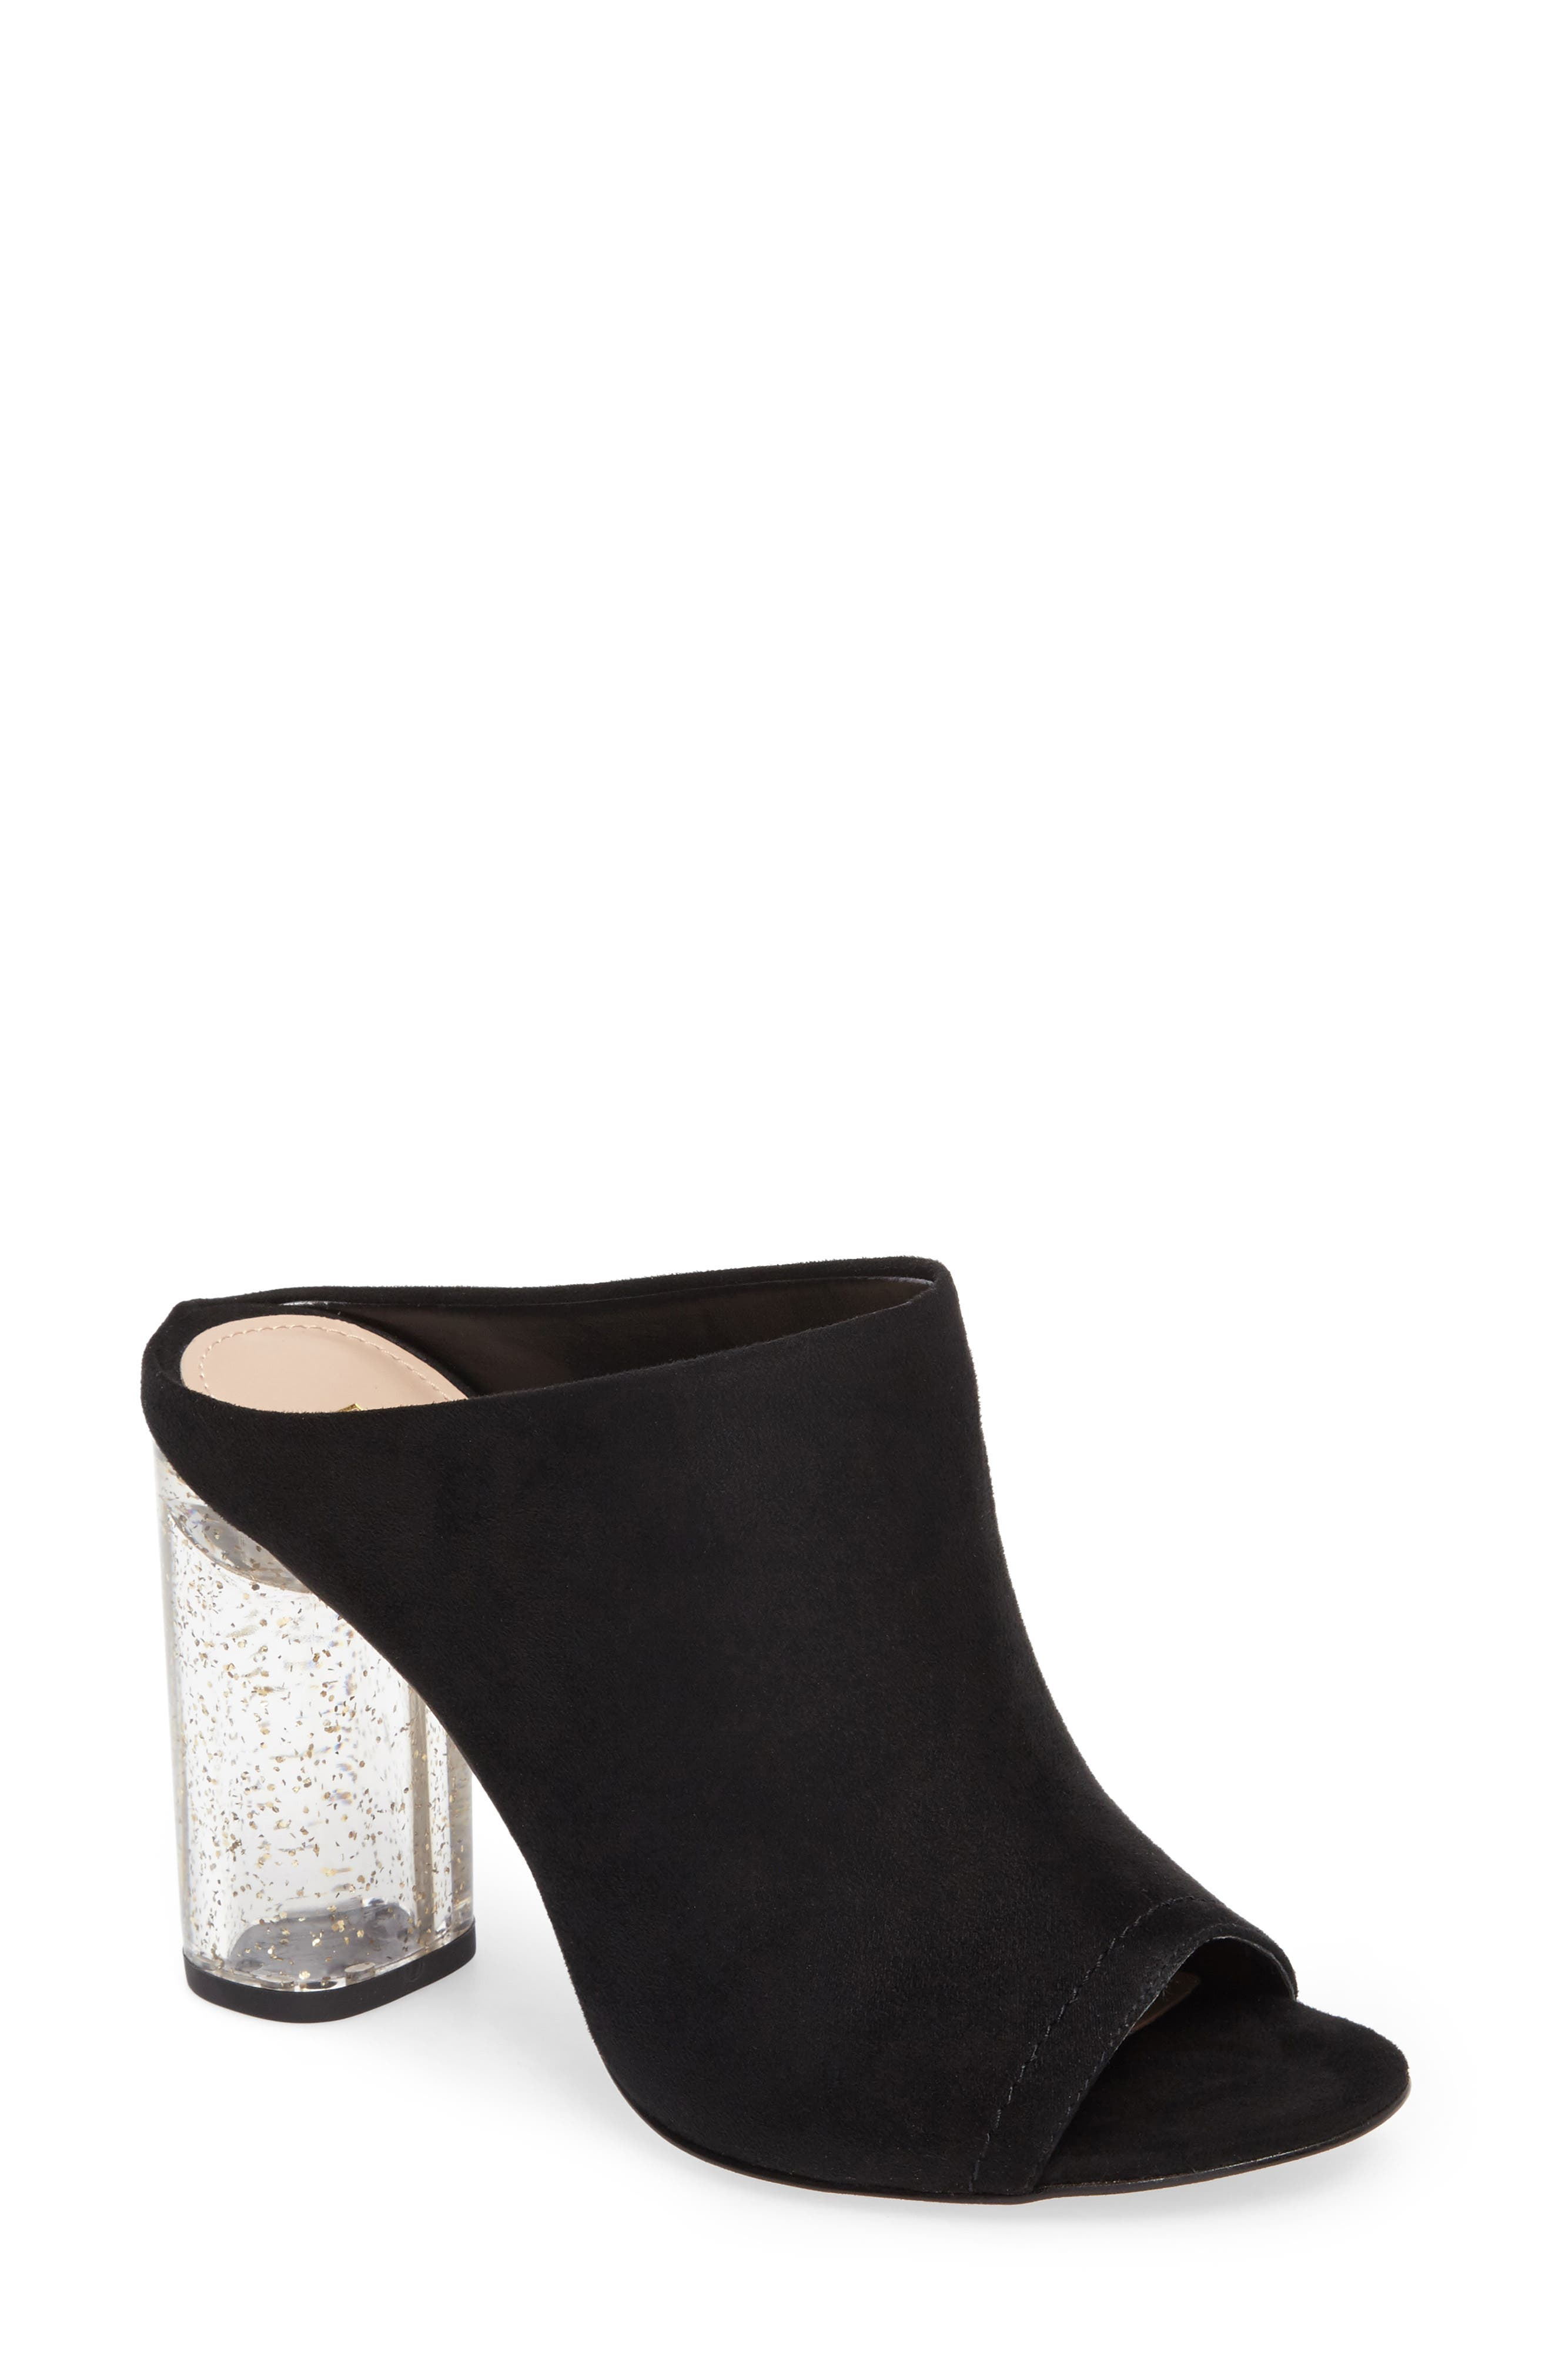 Renee Block Heel Mule,                             Main thumbnail 1, color,                             001